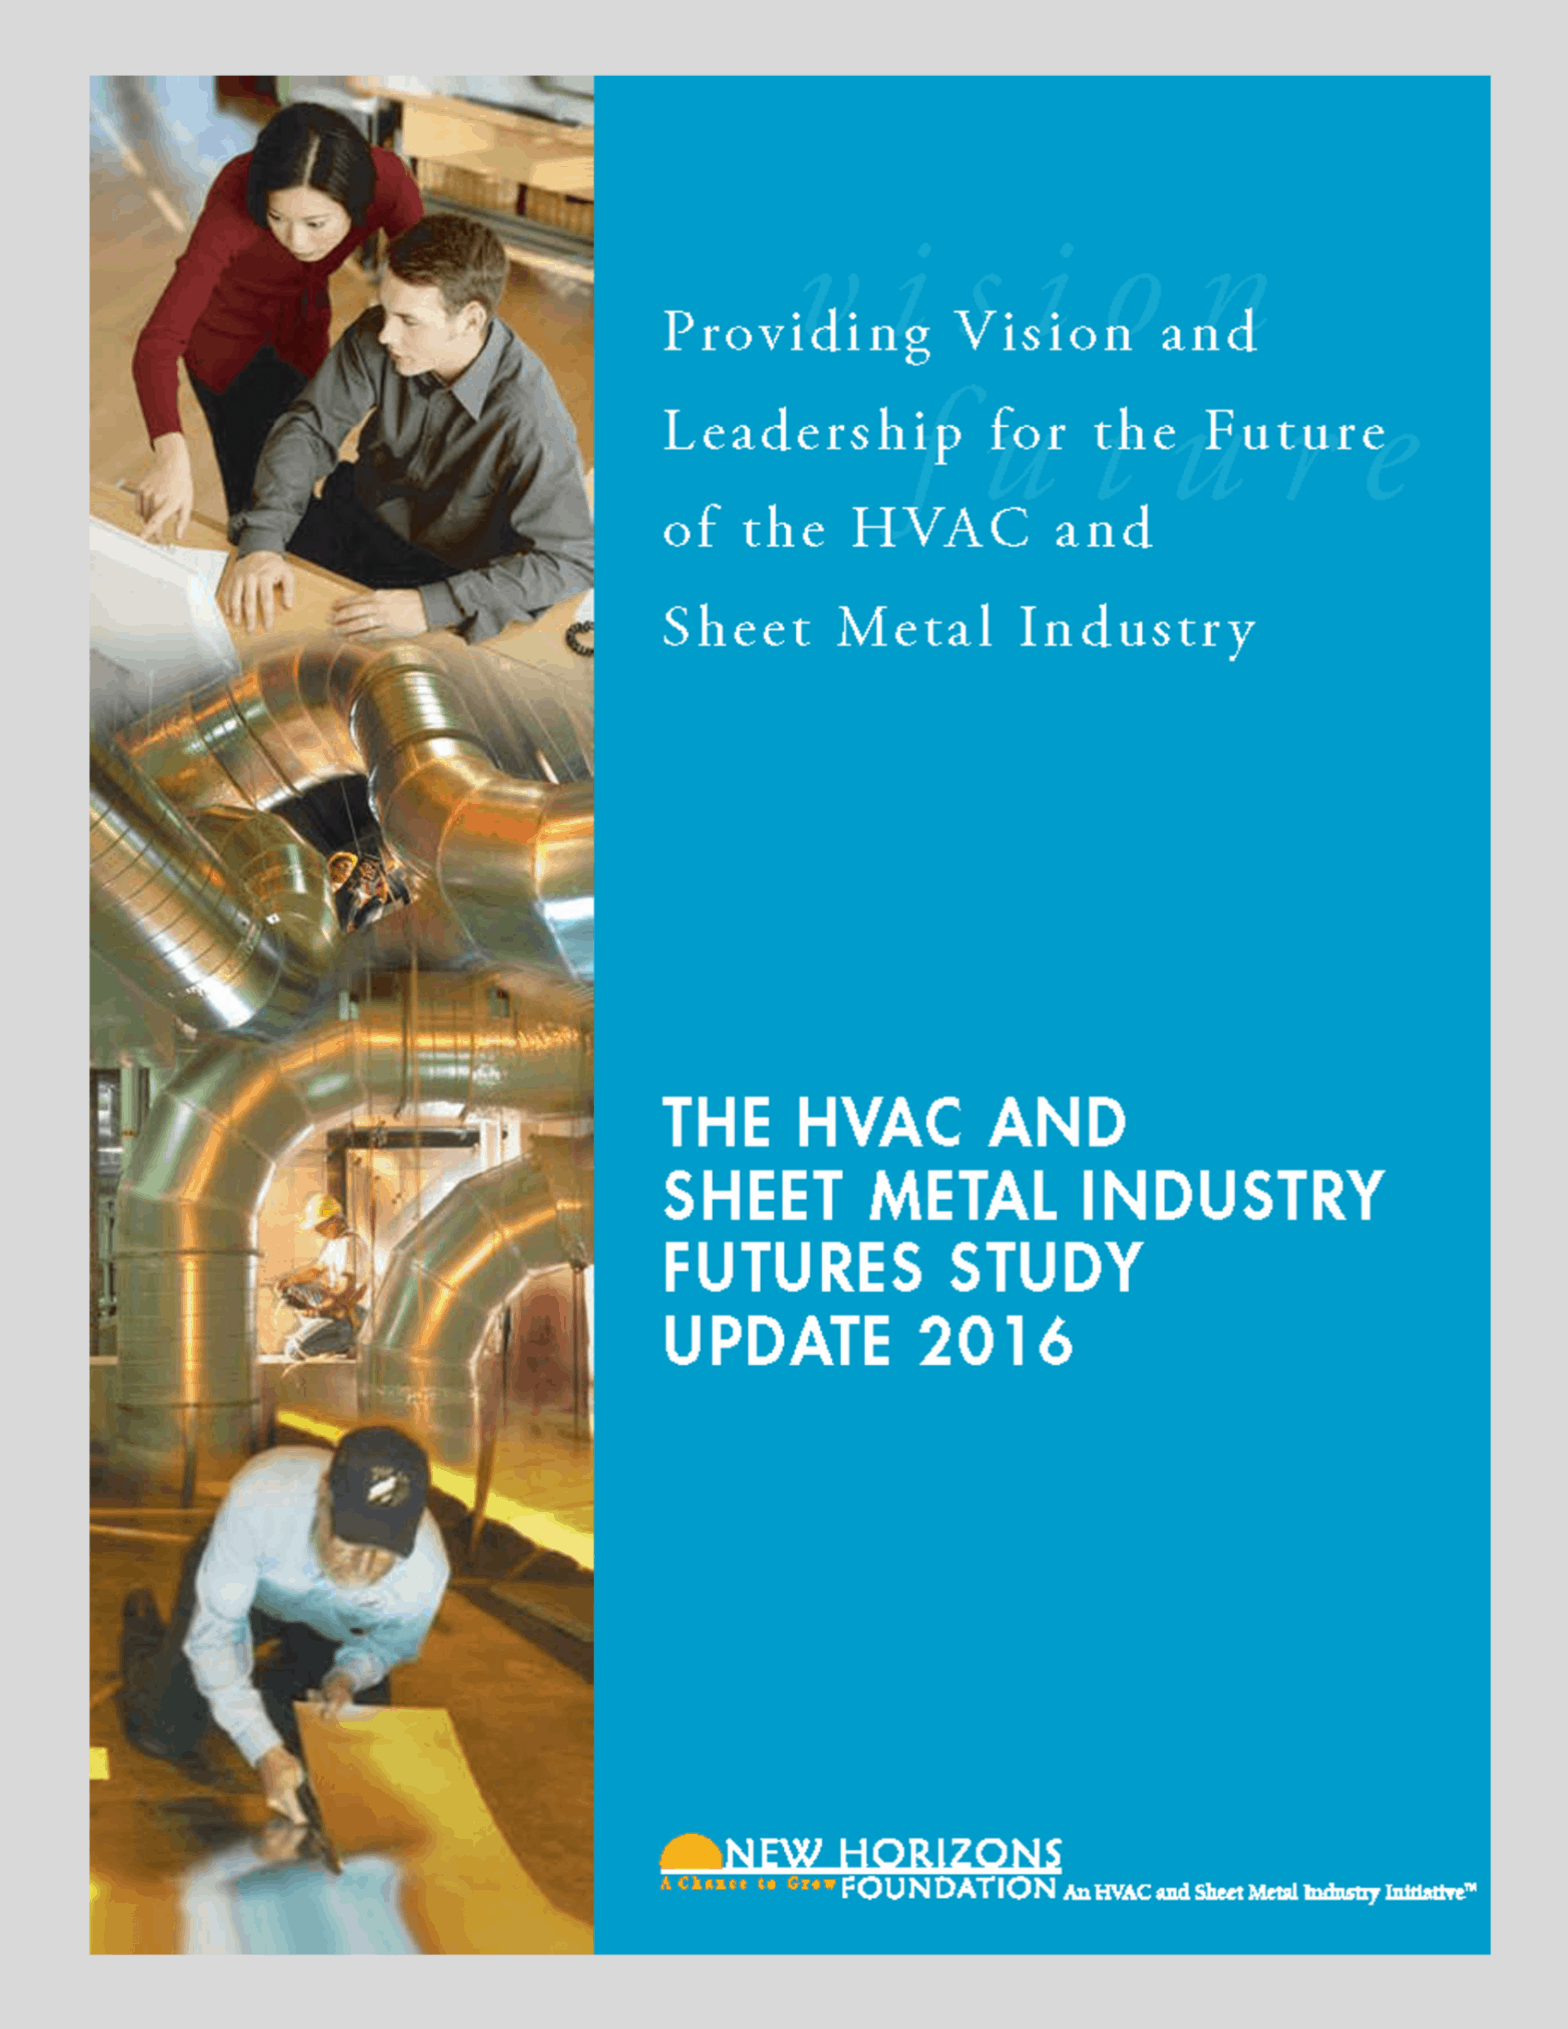 HVAC Futures Study Update 2016